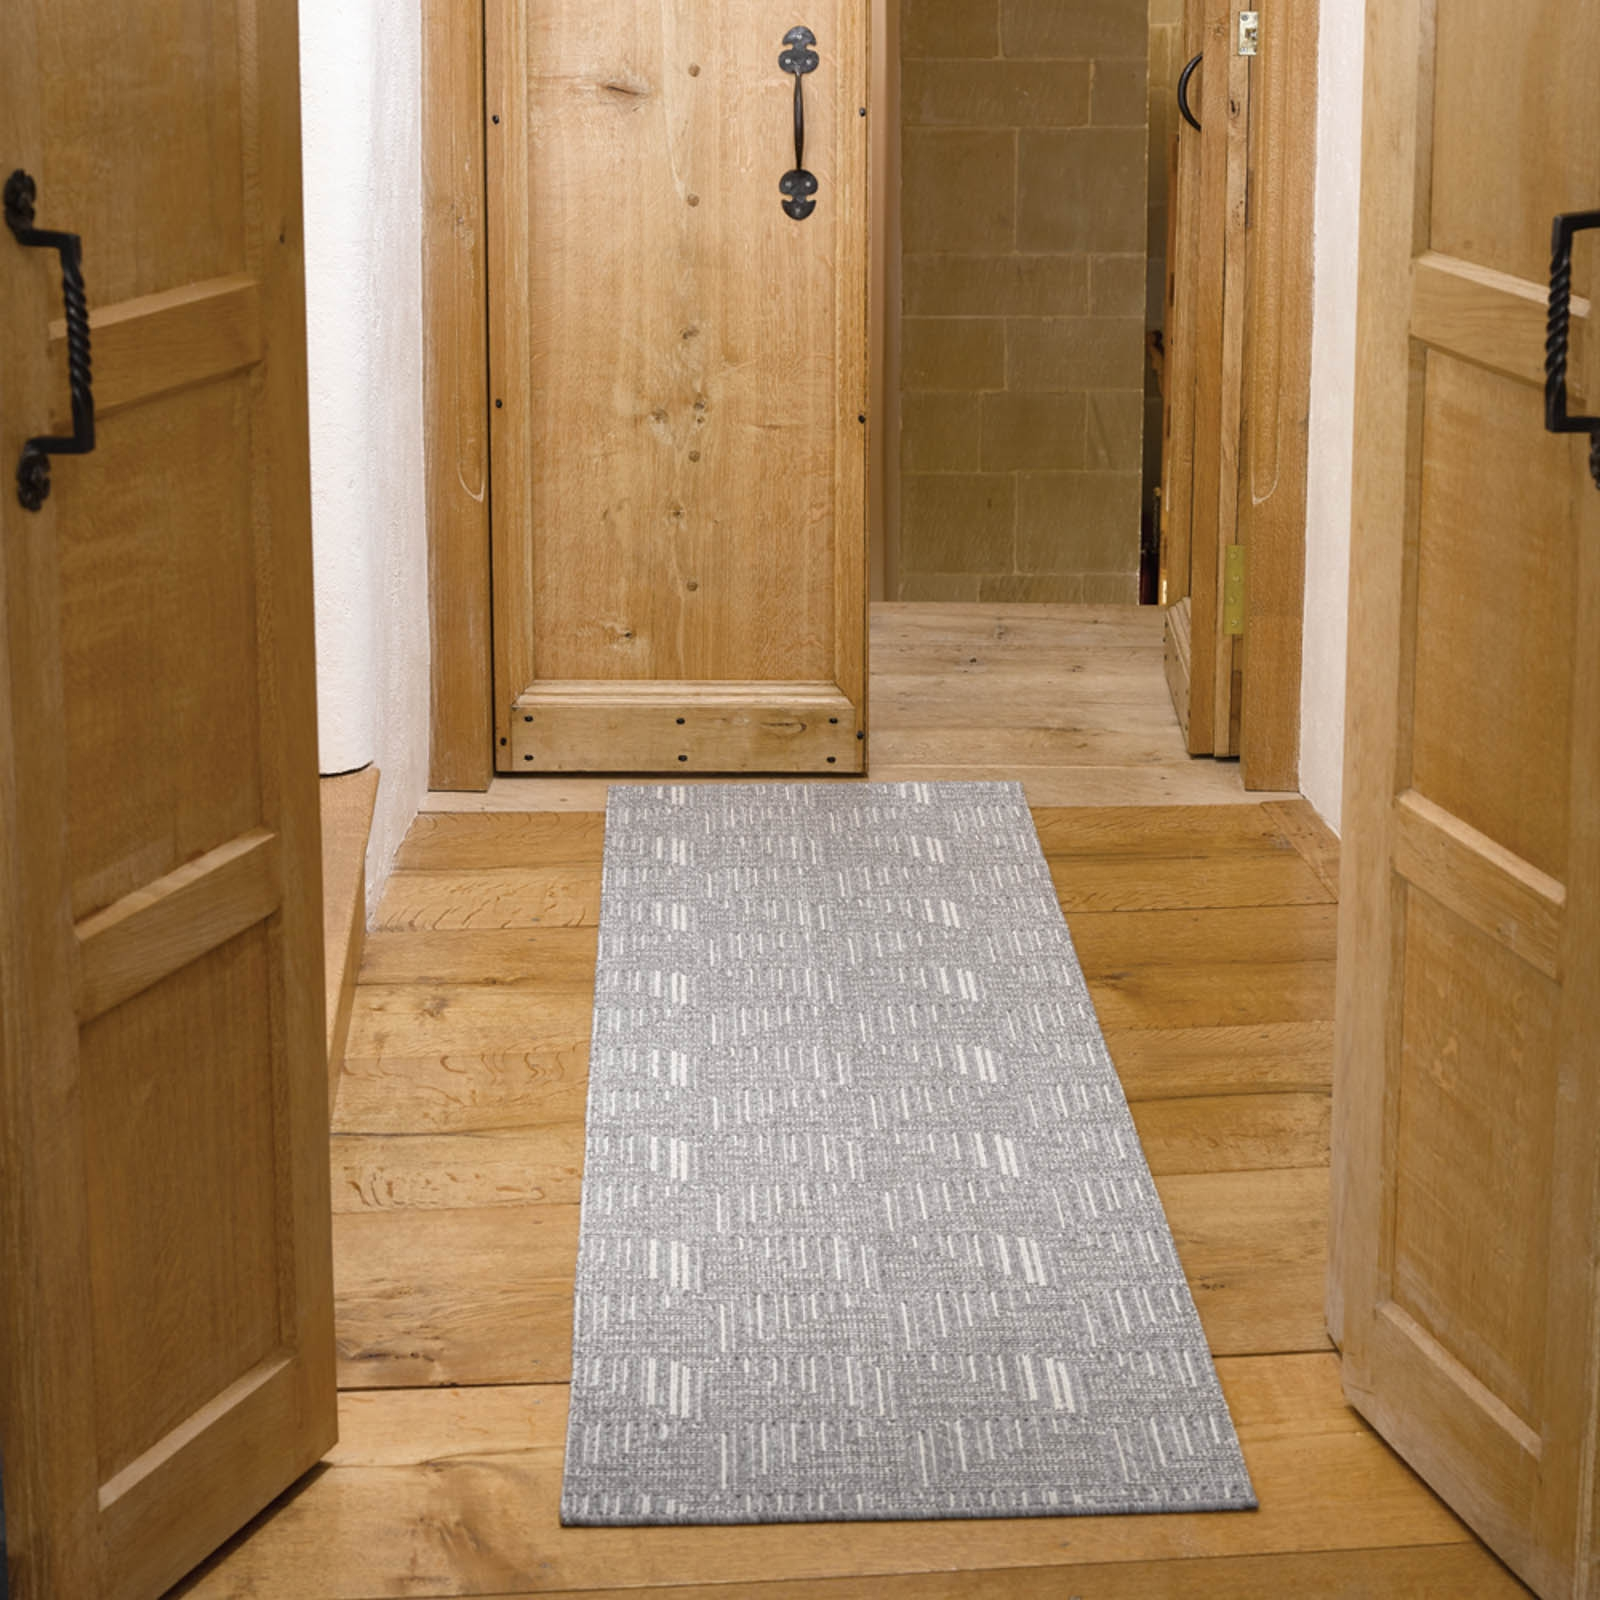 Washable Hall Rugs: 20 Best Of Washable Runner Rugs For Hallways